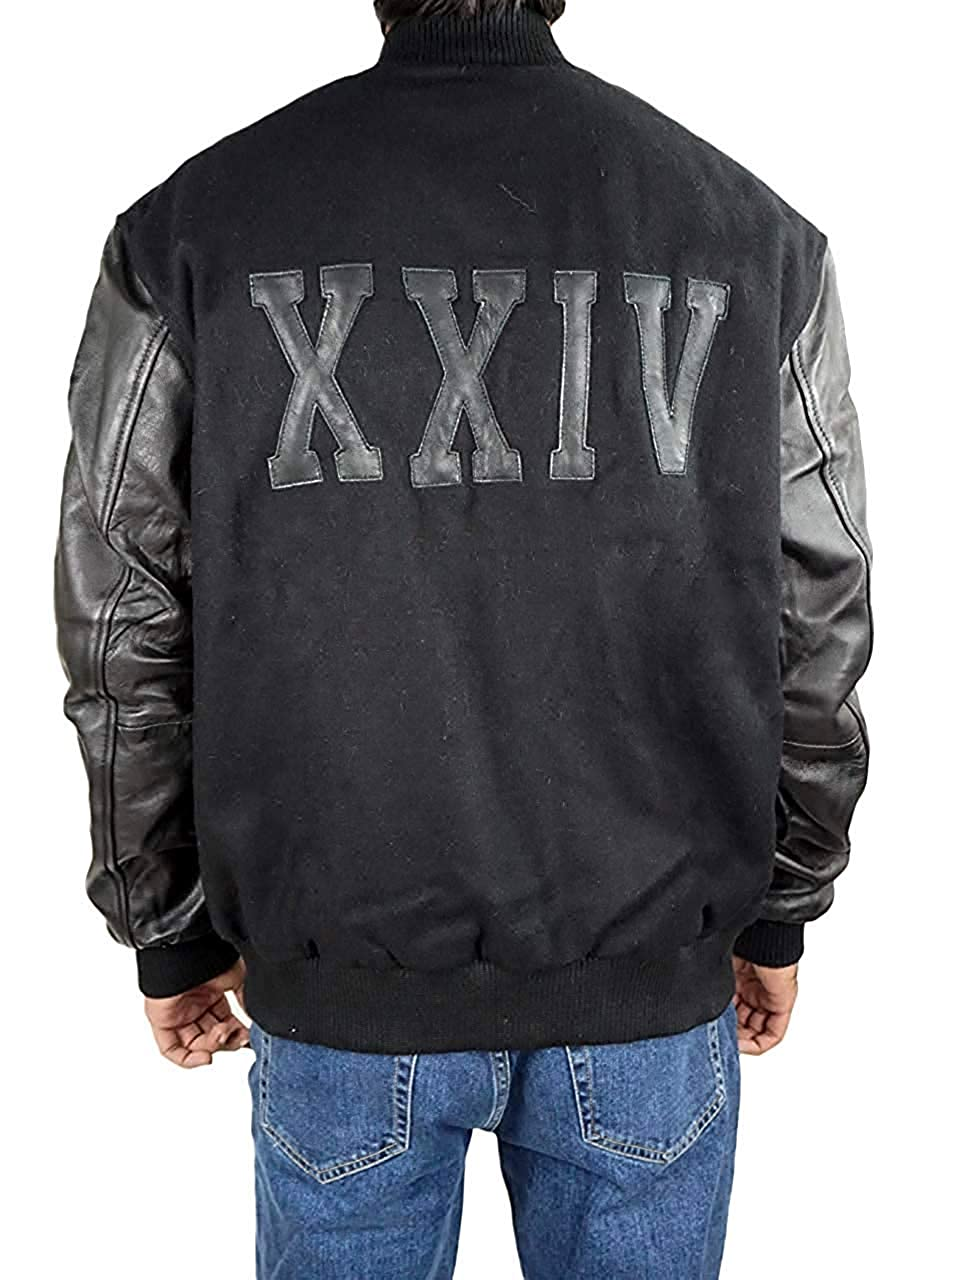 a5d2d5975cd Michael B Jordan Kobe Destroyer XXIV Adonis Creed Battle Varsity Leather  Sleeves Jacket Black at Amazon Men's Clothing store: